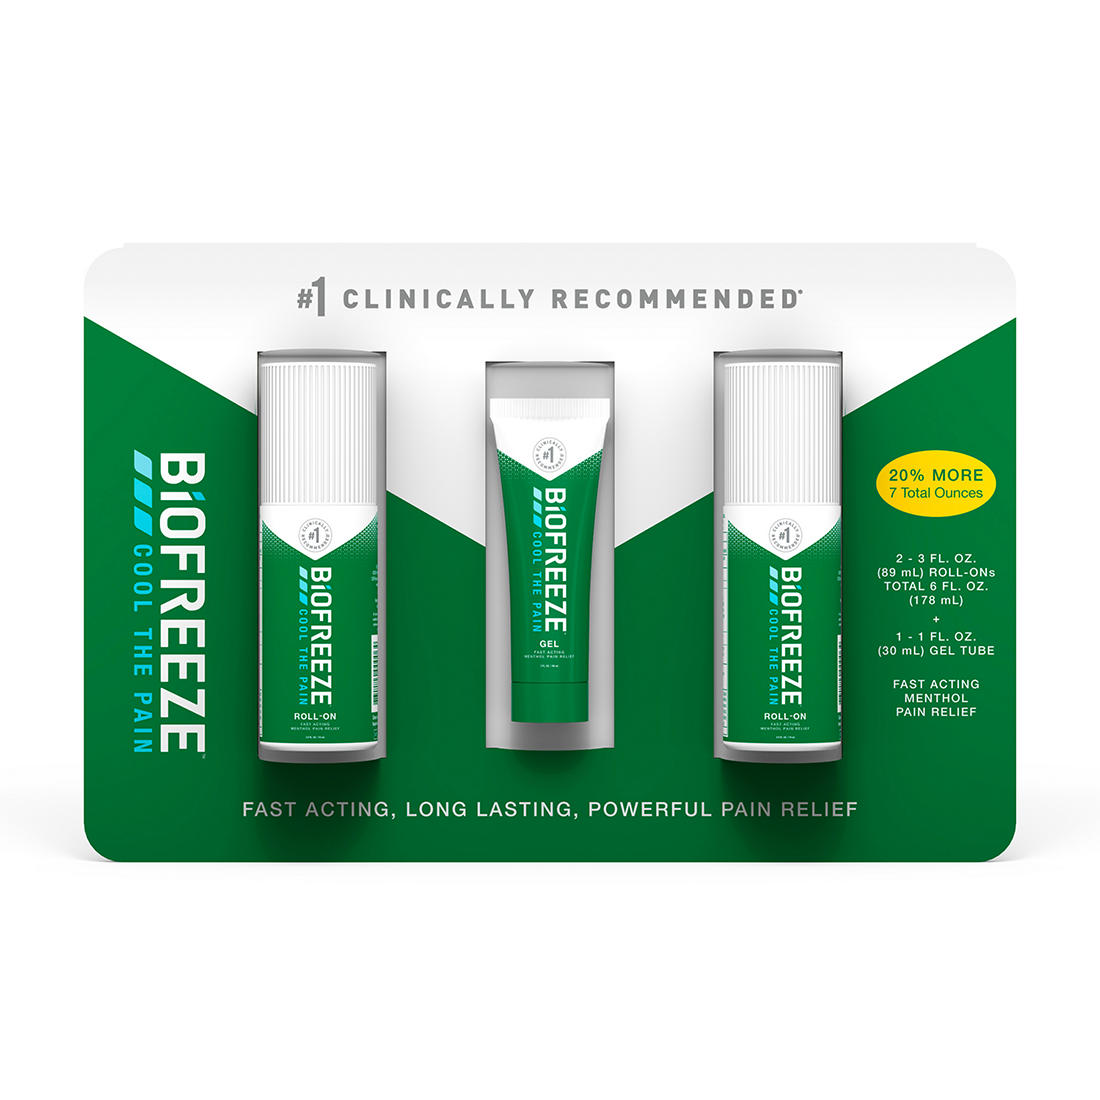 photo relating to Biofreeze Coupons Printable titled Biofreeze Suffering Reduction Gel Multi-Pack, 2 pk./3 fl. oz. with Reward 1 fl. oz. Tube